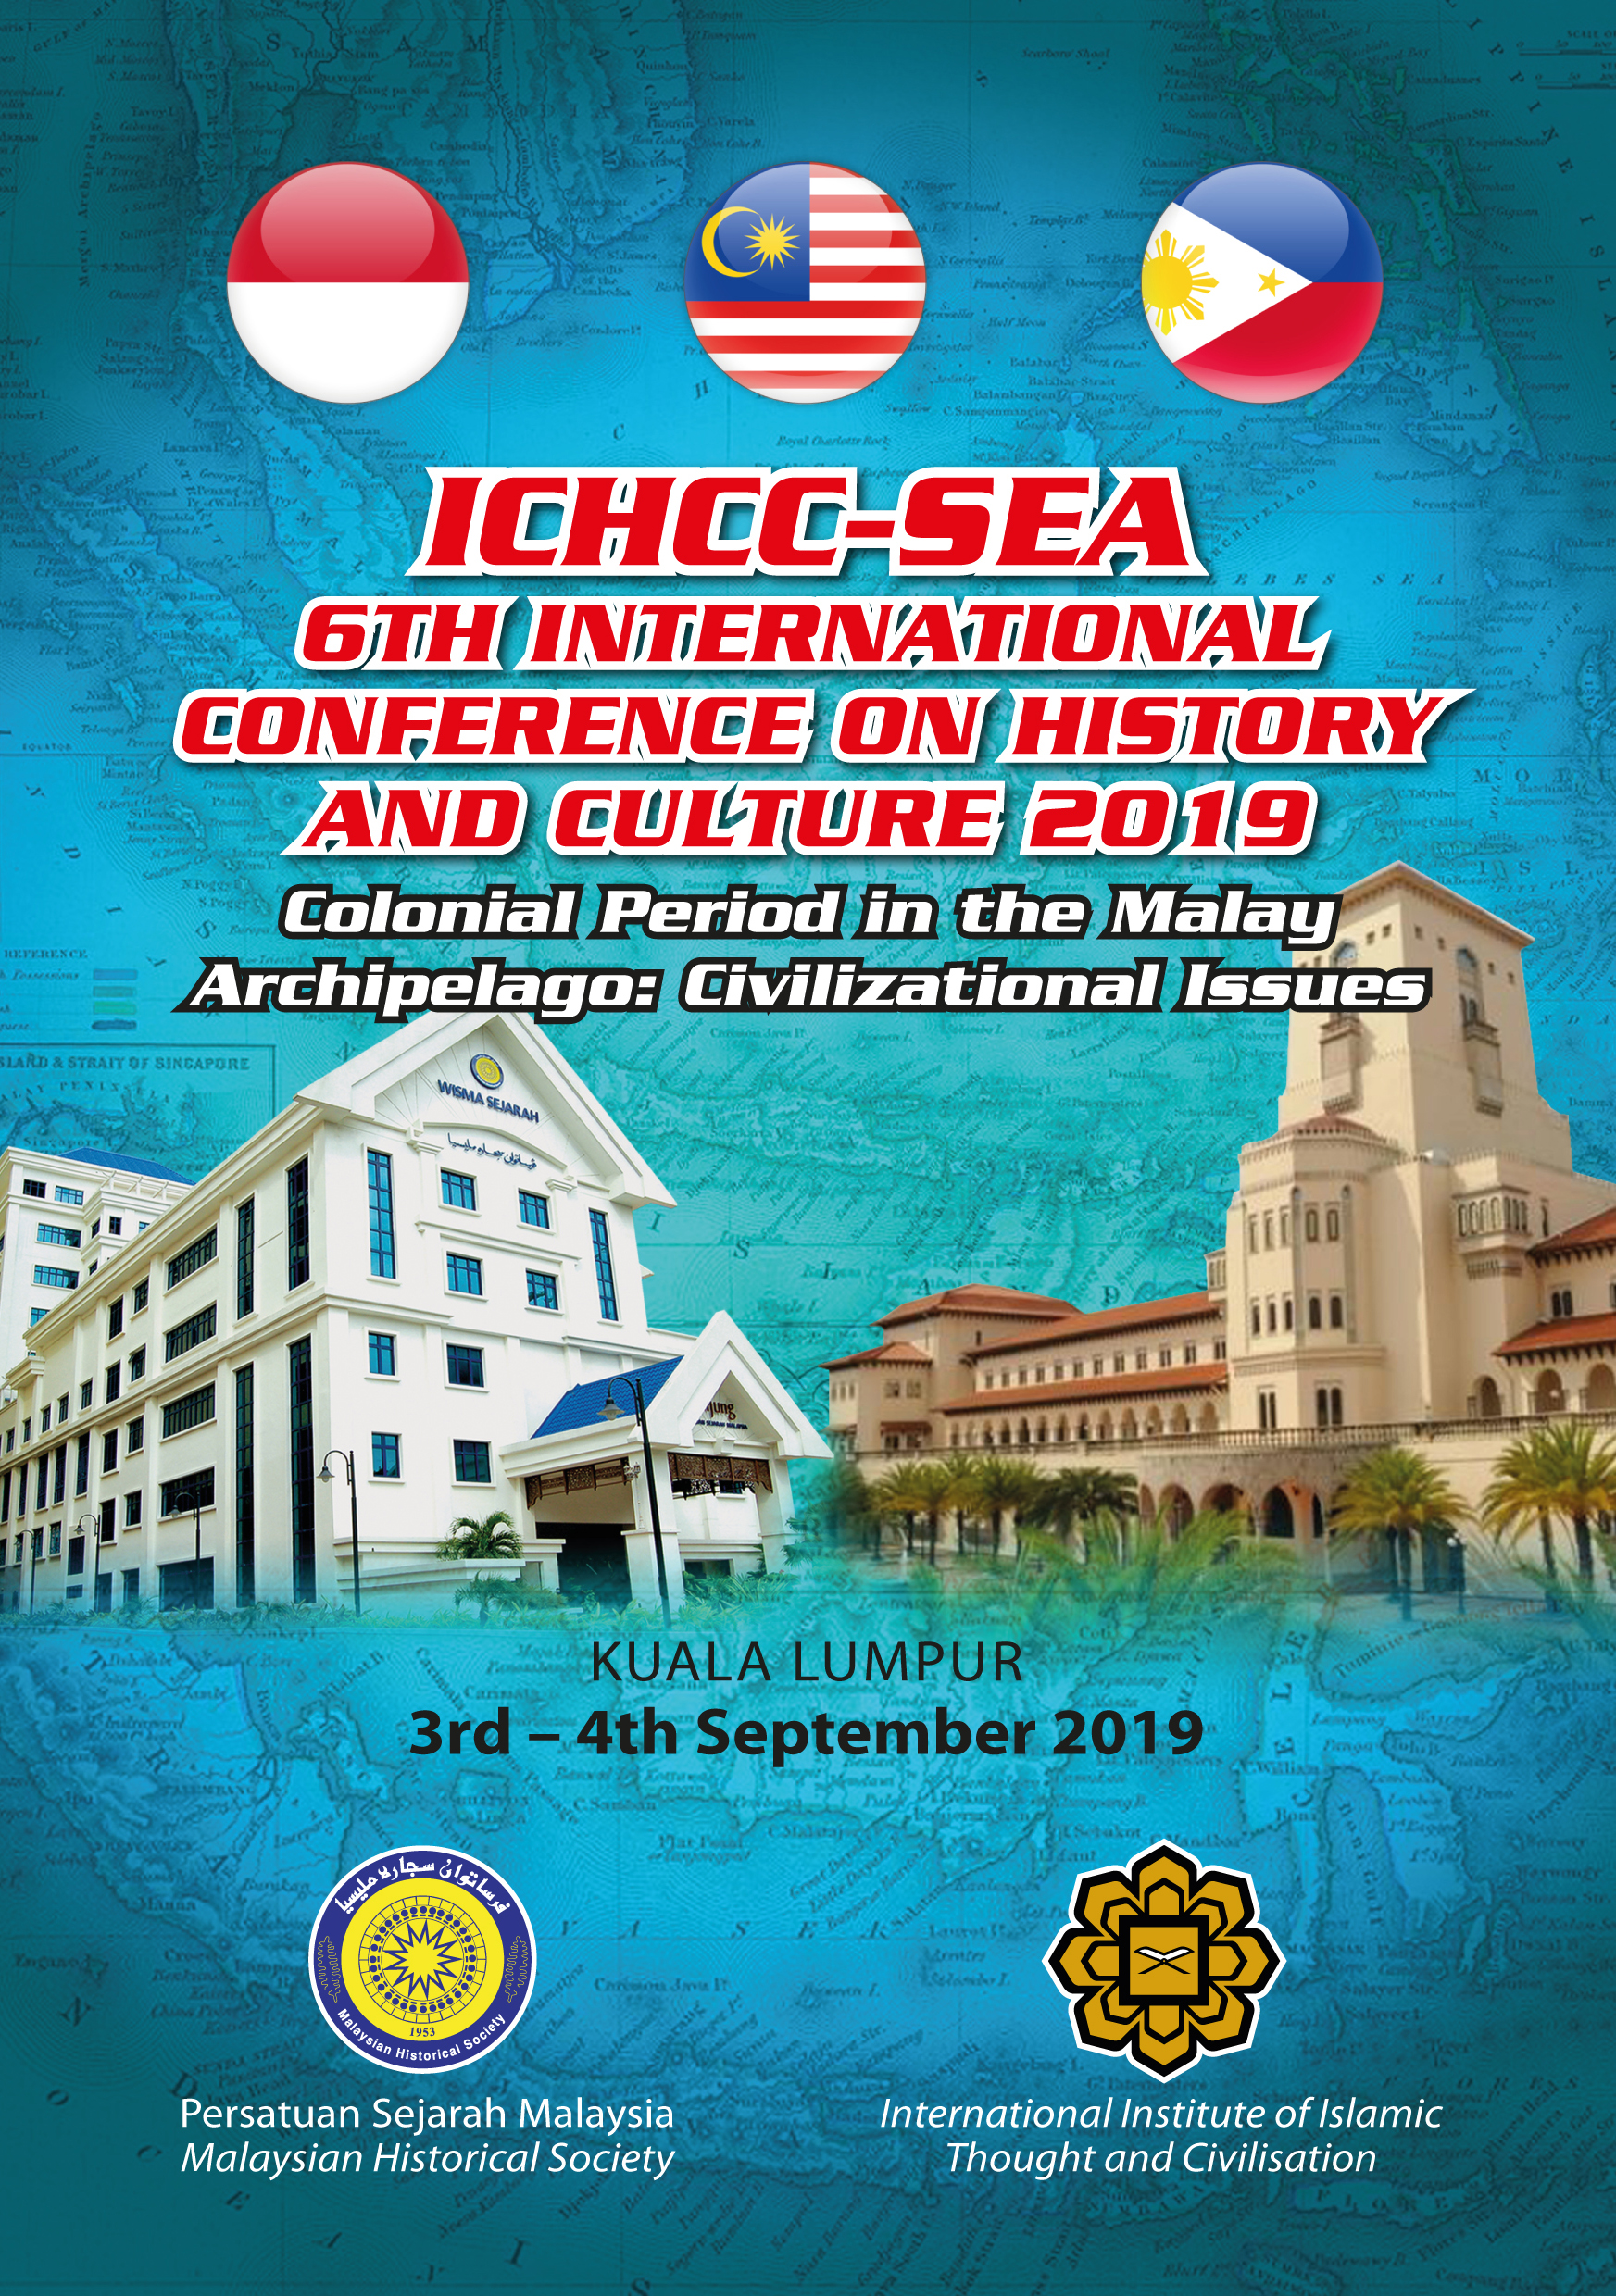 6TH INTERNATIONAL CONFERENCE ON HISTORY AND CULTURE